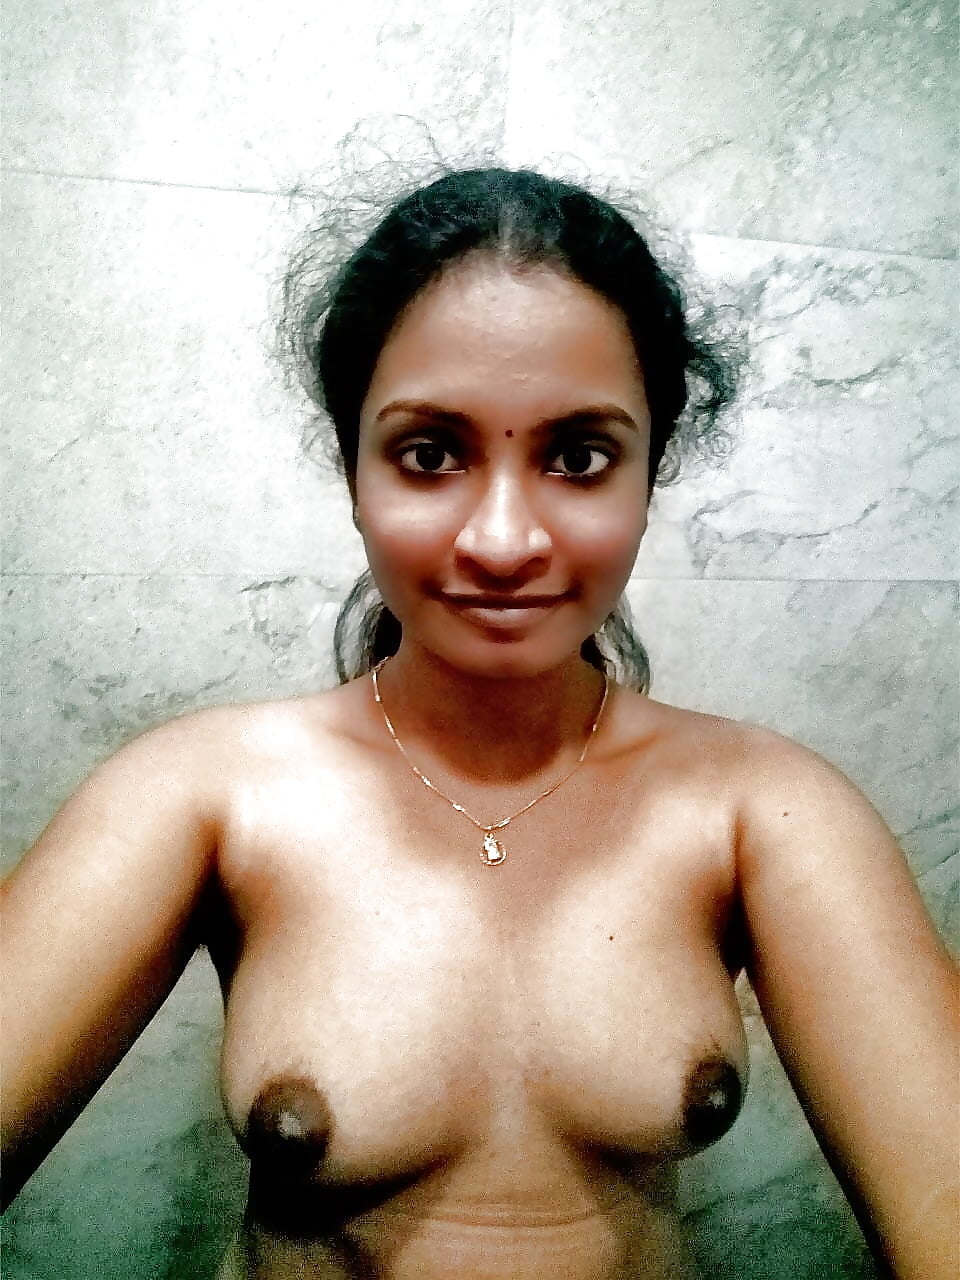 Hot nude tamil pdf, video babes blow job